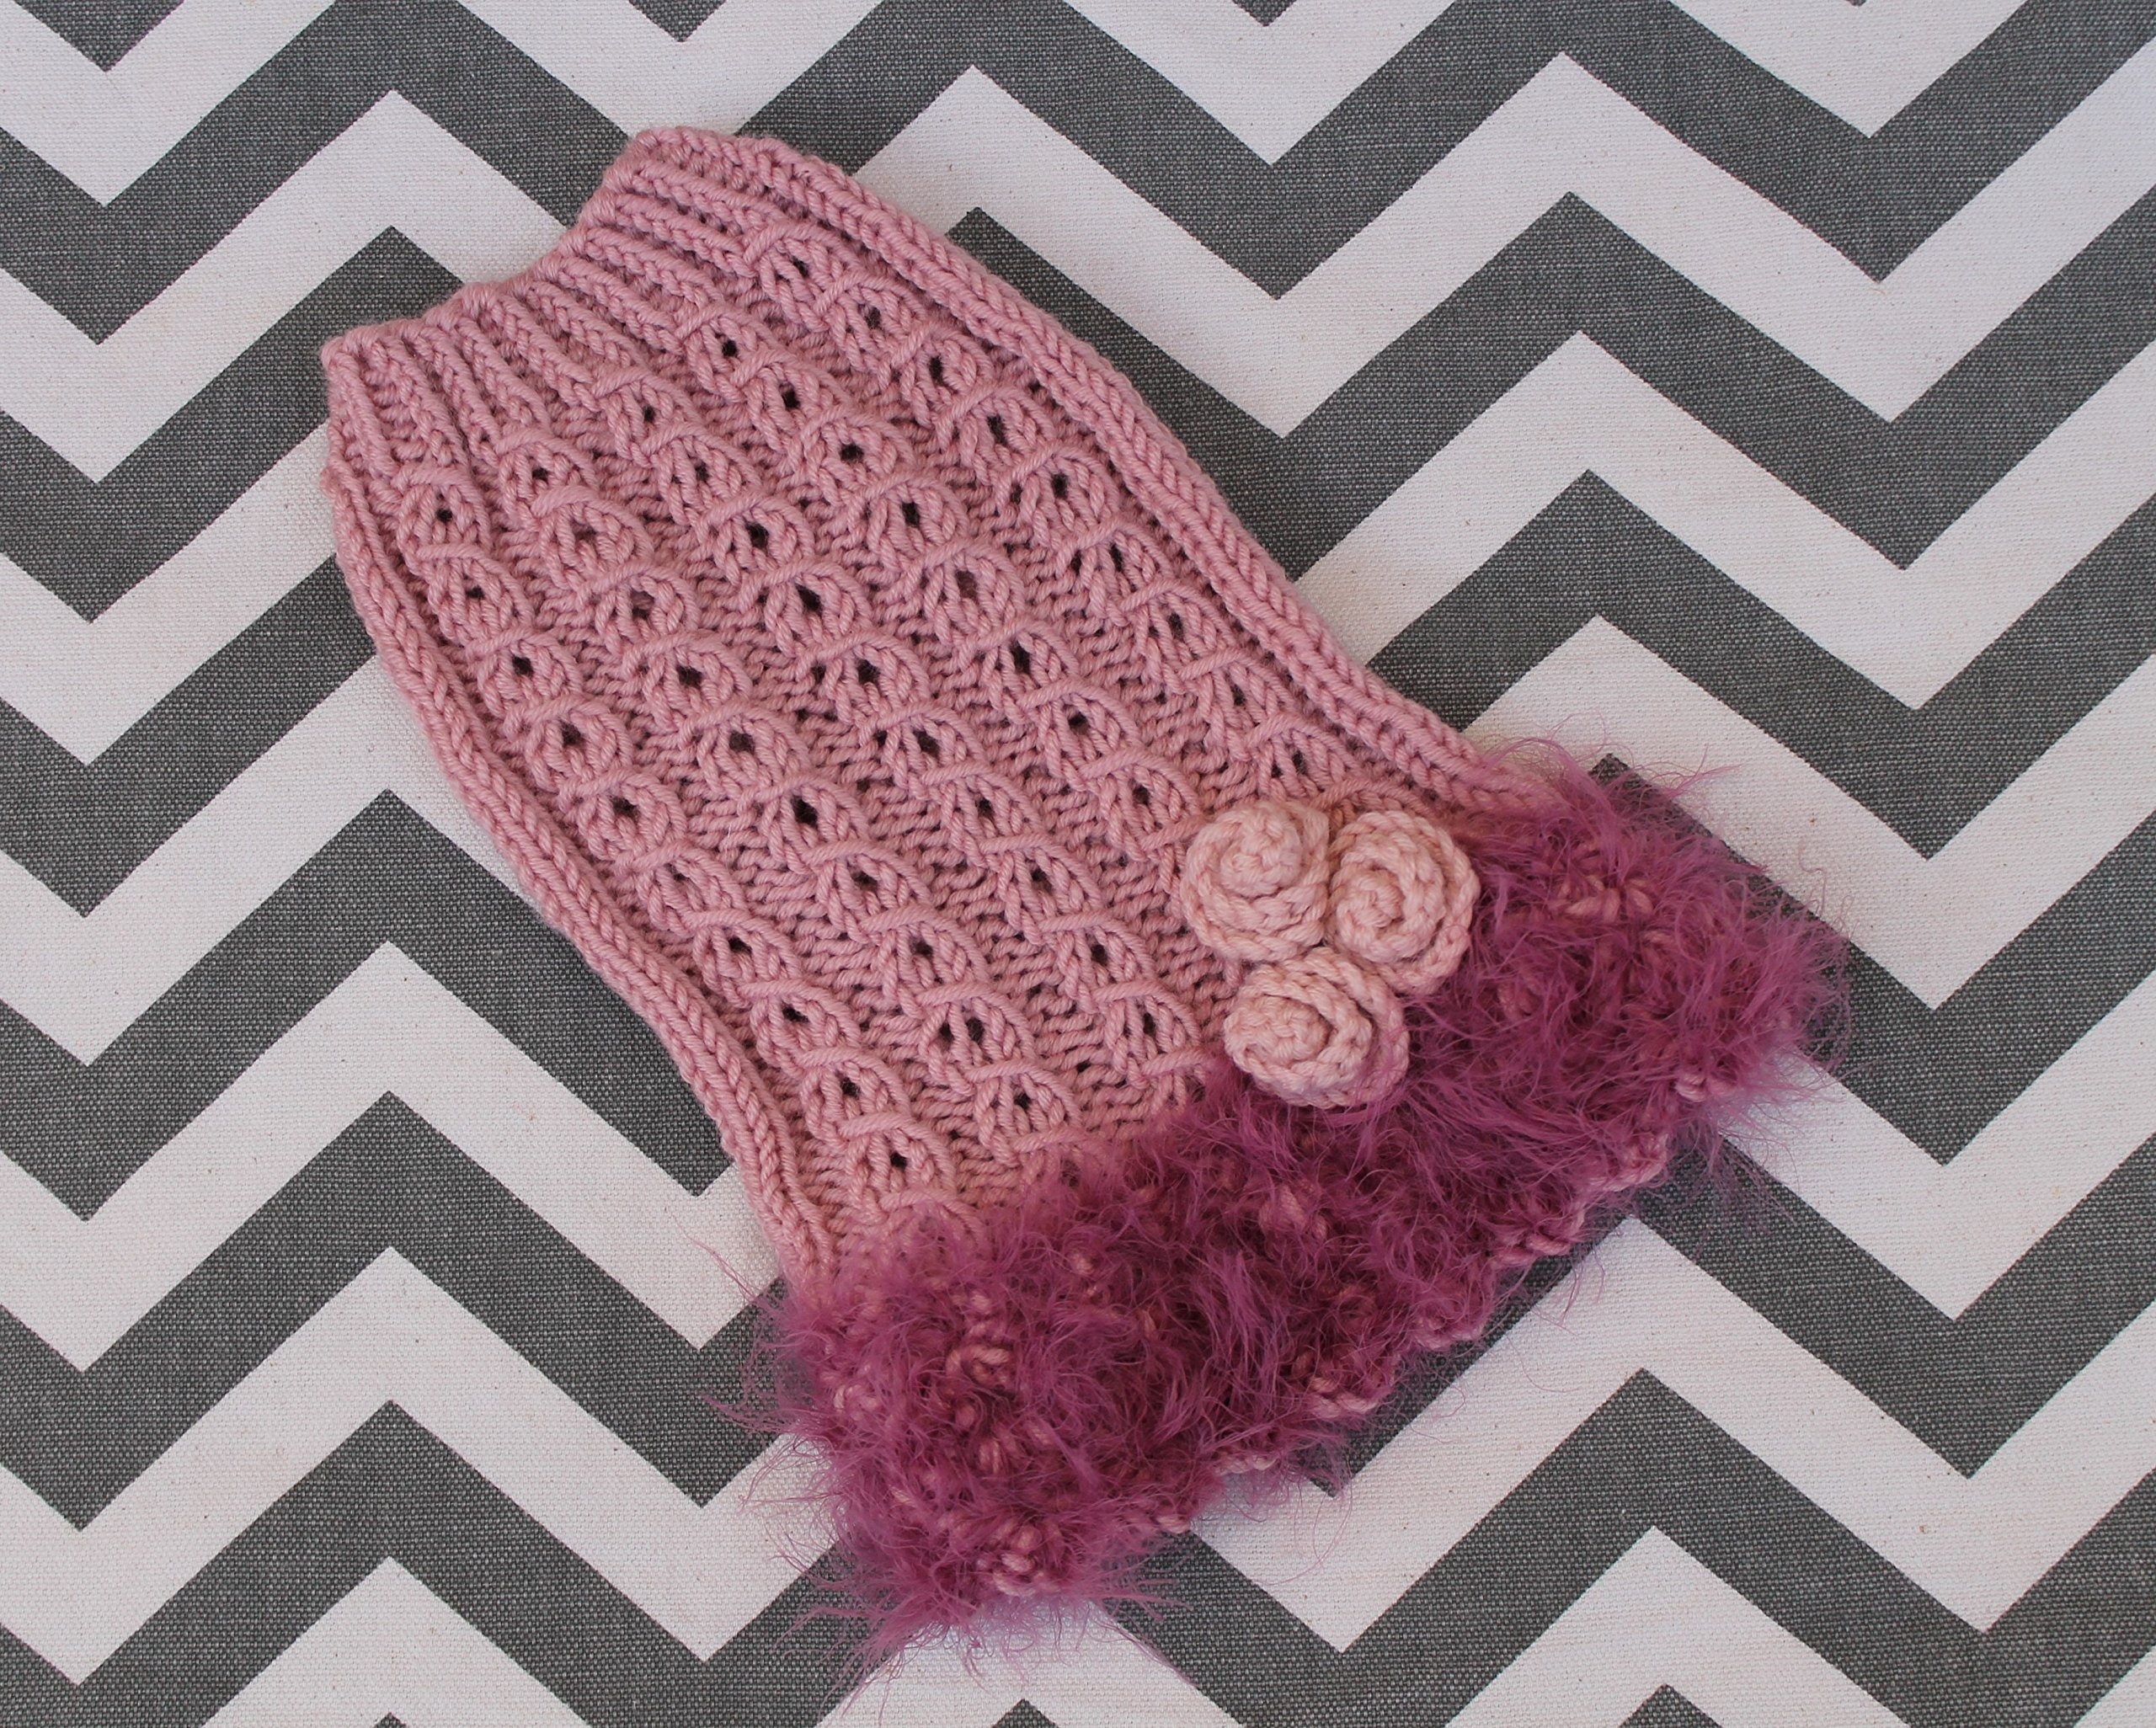 Hand Knit Teacup Dog Sweater Dress XXS/XS 2 1/2 to 4 Lbs Fine Merino Wool Vintage Pink Rose & Orchid for Puppy Chihuahua Yorkie Maltese Pomeranian